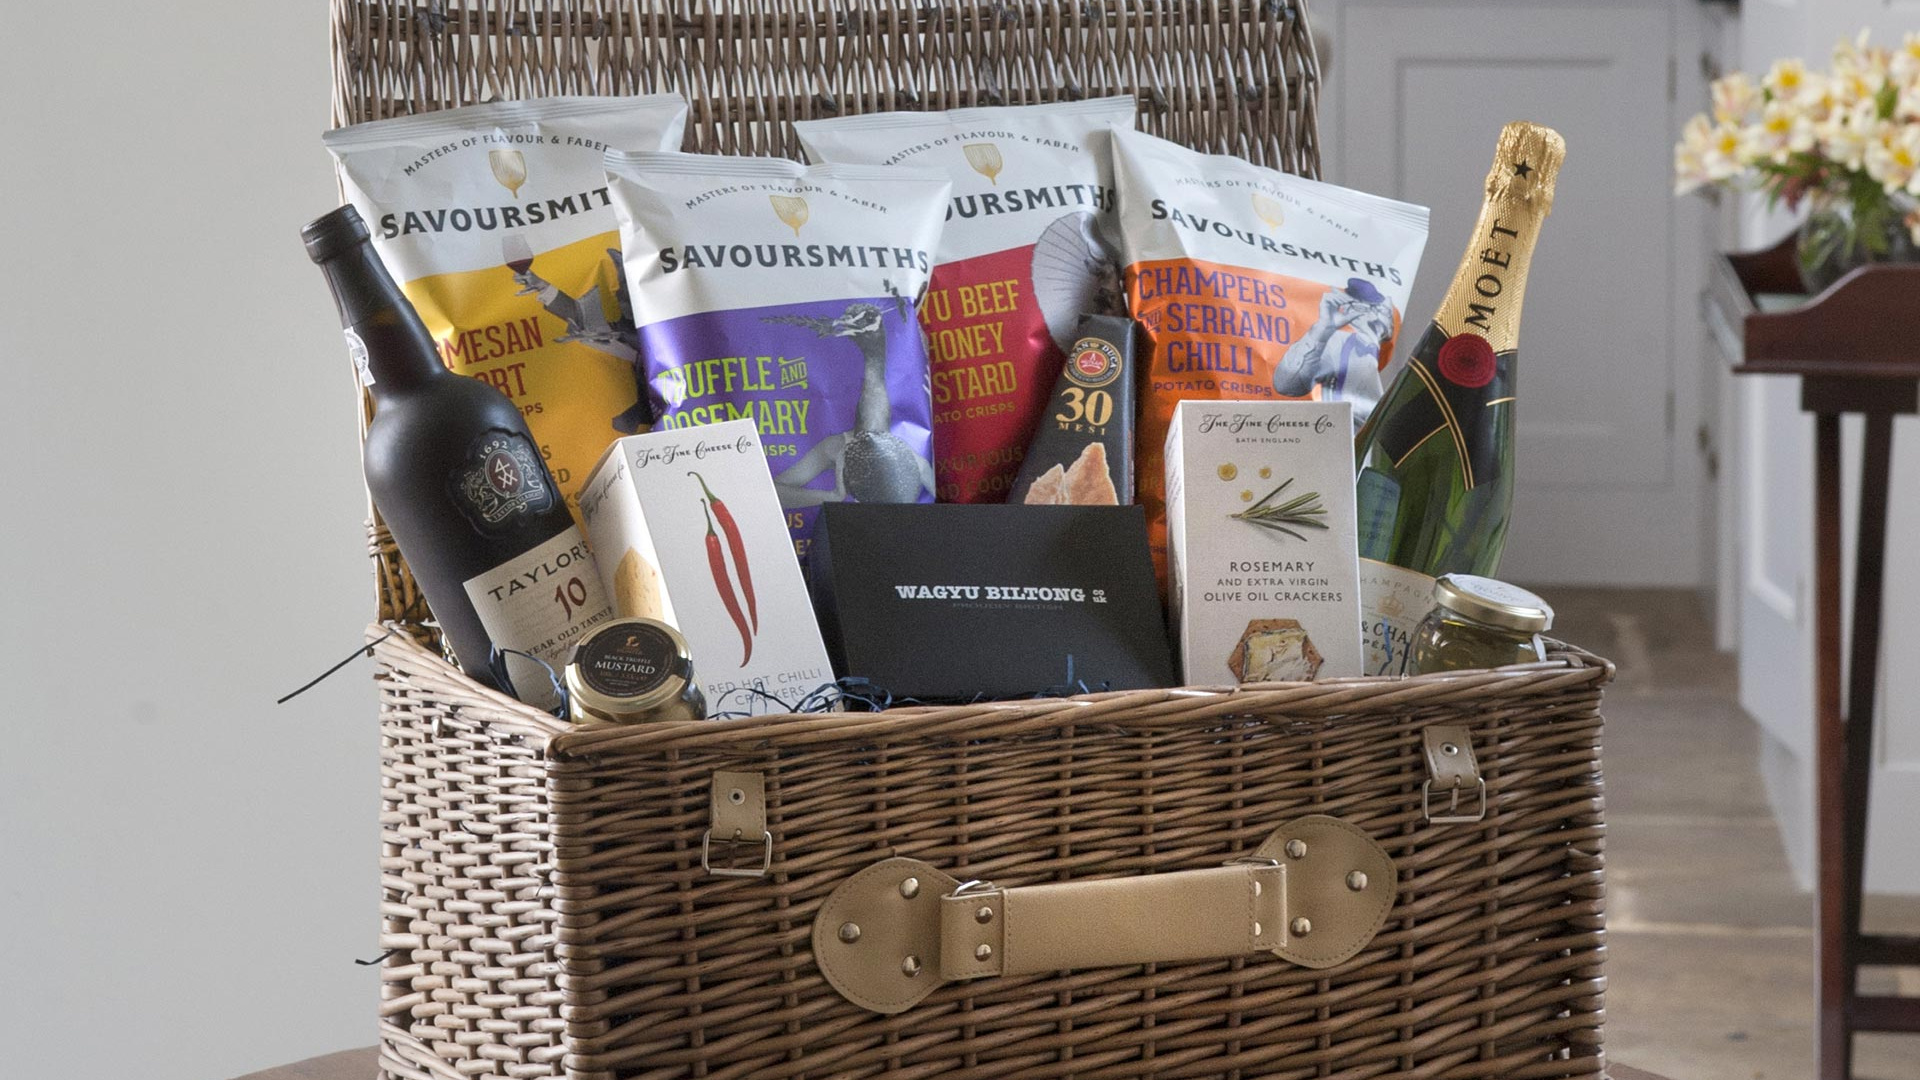 Win a SAVOURSMITHS luxury hamper